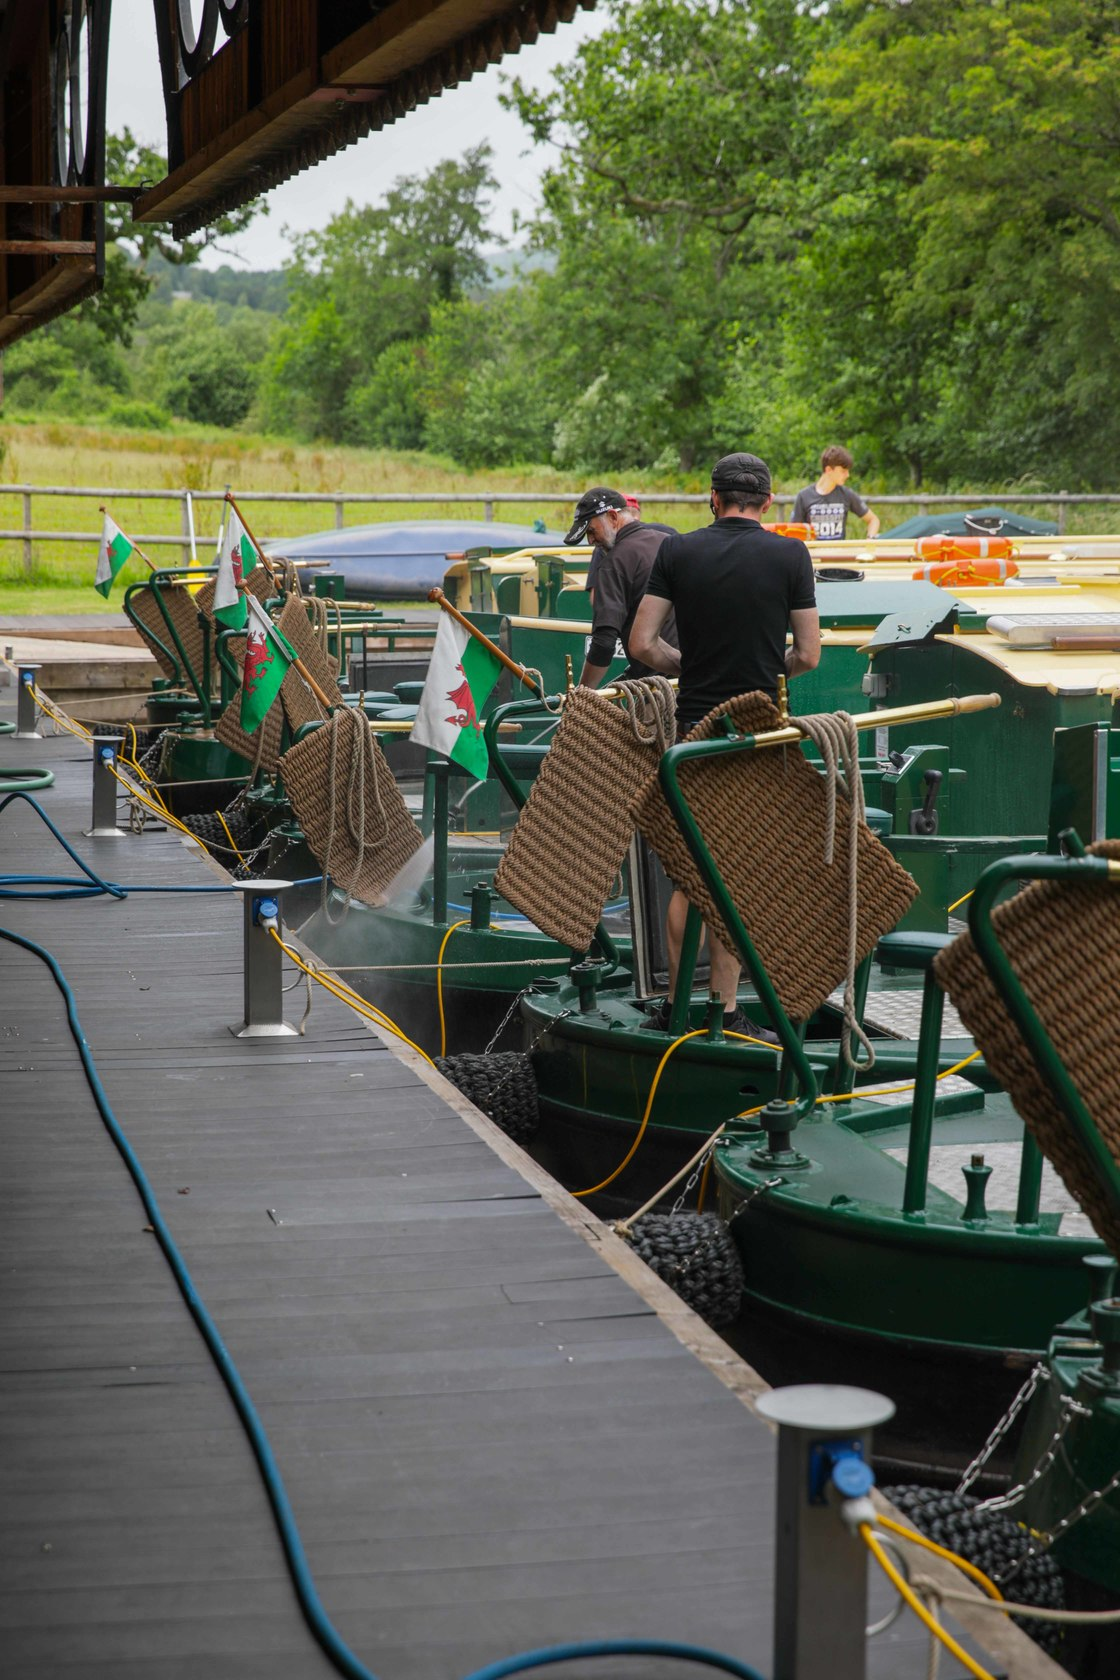 Every boat is jetwashed and the brasses polished